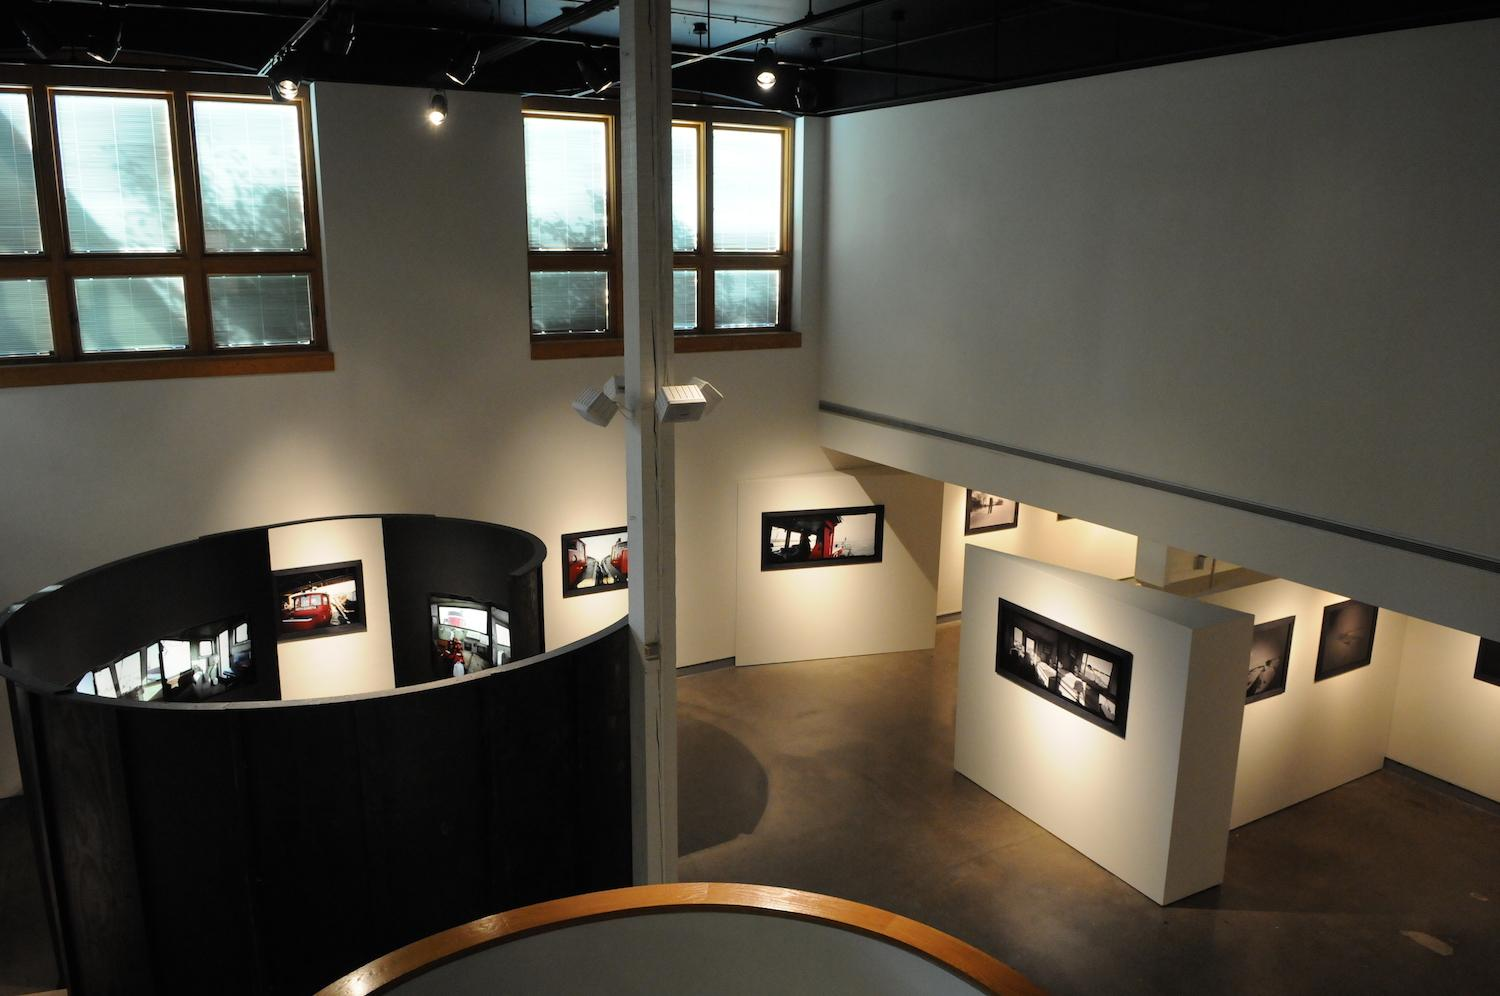 Overview of the gallery and wheelhouse.